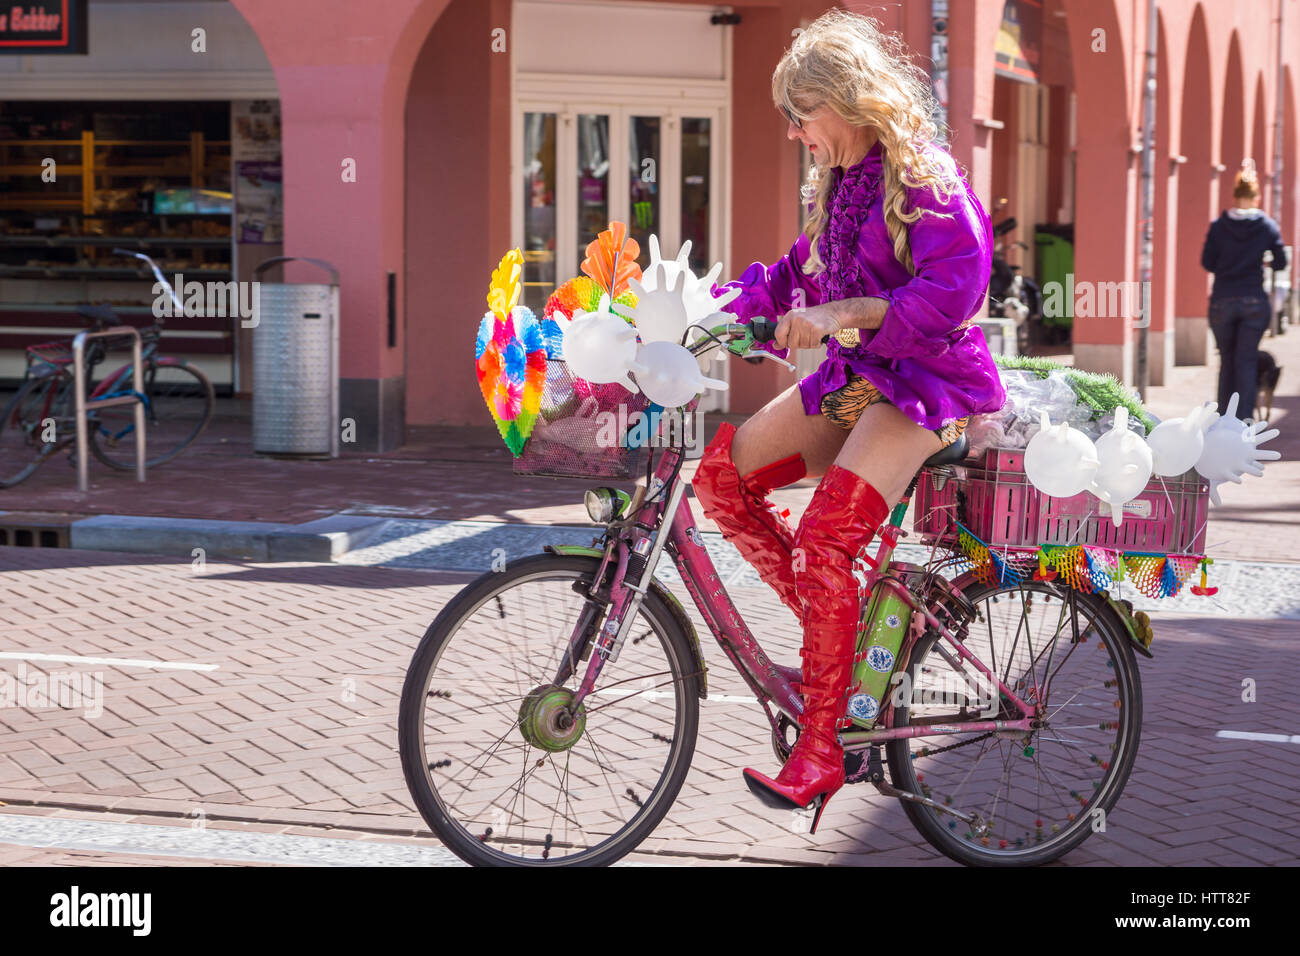 Man riding bicycle dressed up as cross-dresser ready to entertain people in Amsterdam, The Netherlands Stock Photo